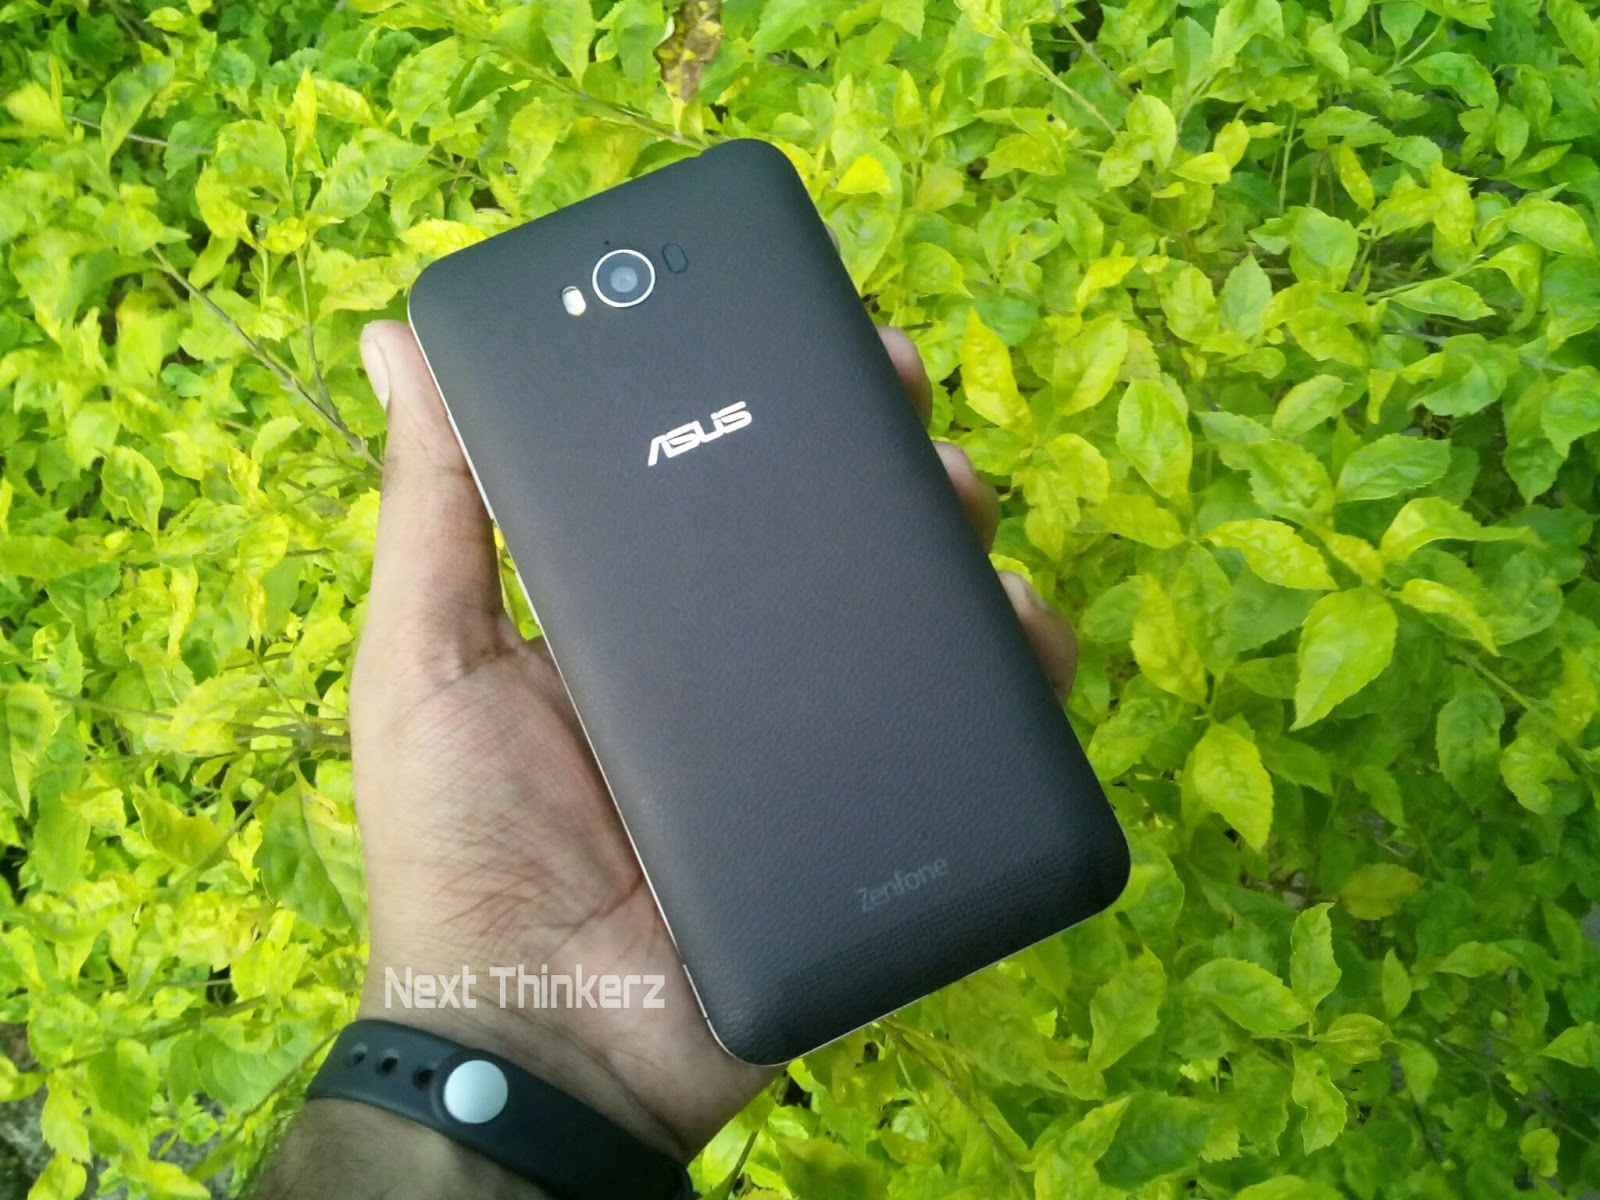 Upgraded Asus Zenfone Max 2016zc550kl Launched While Sonakshi Zc550kl 2 32gb Black 2016 Back